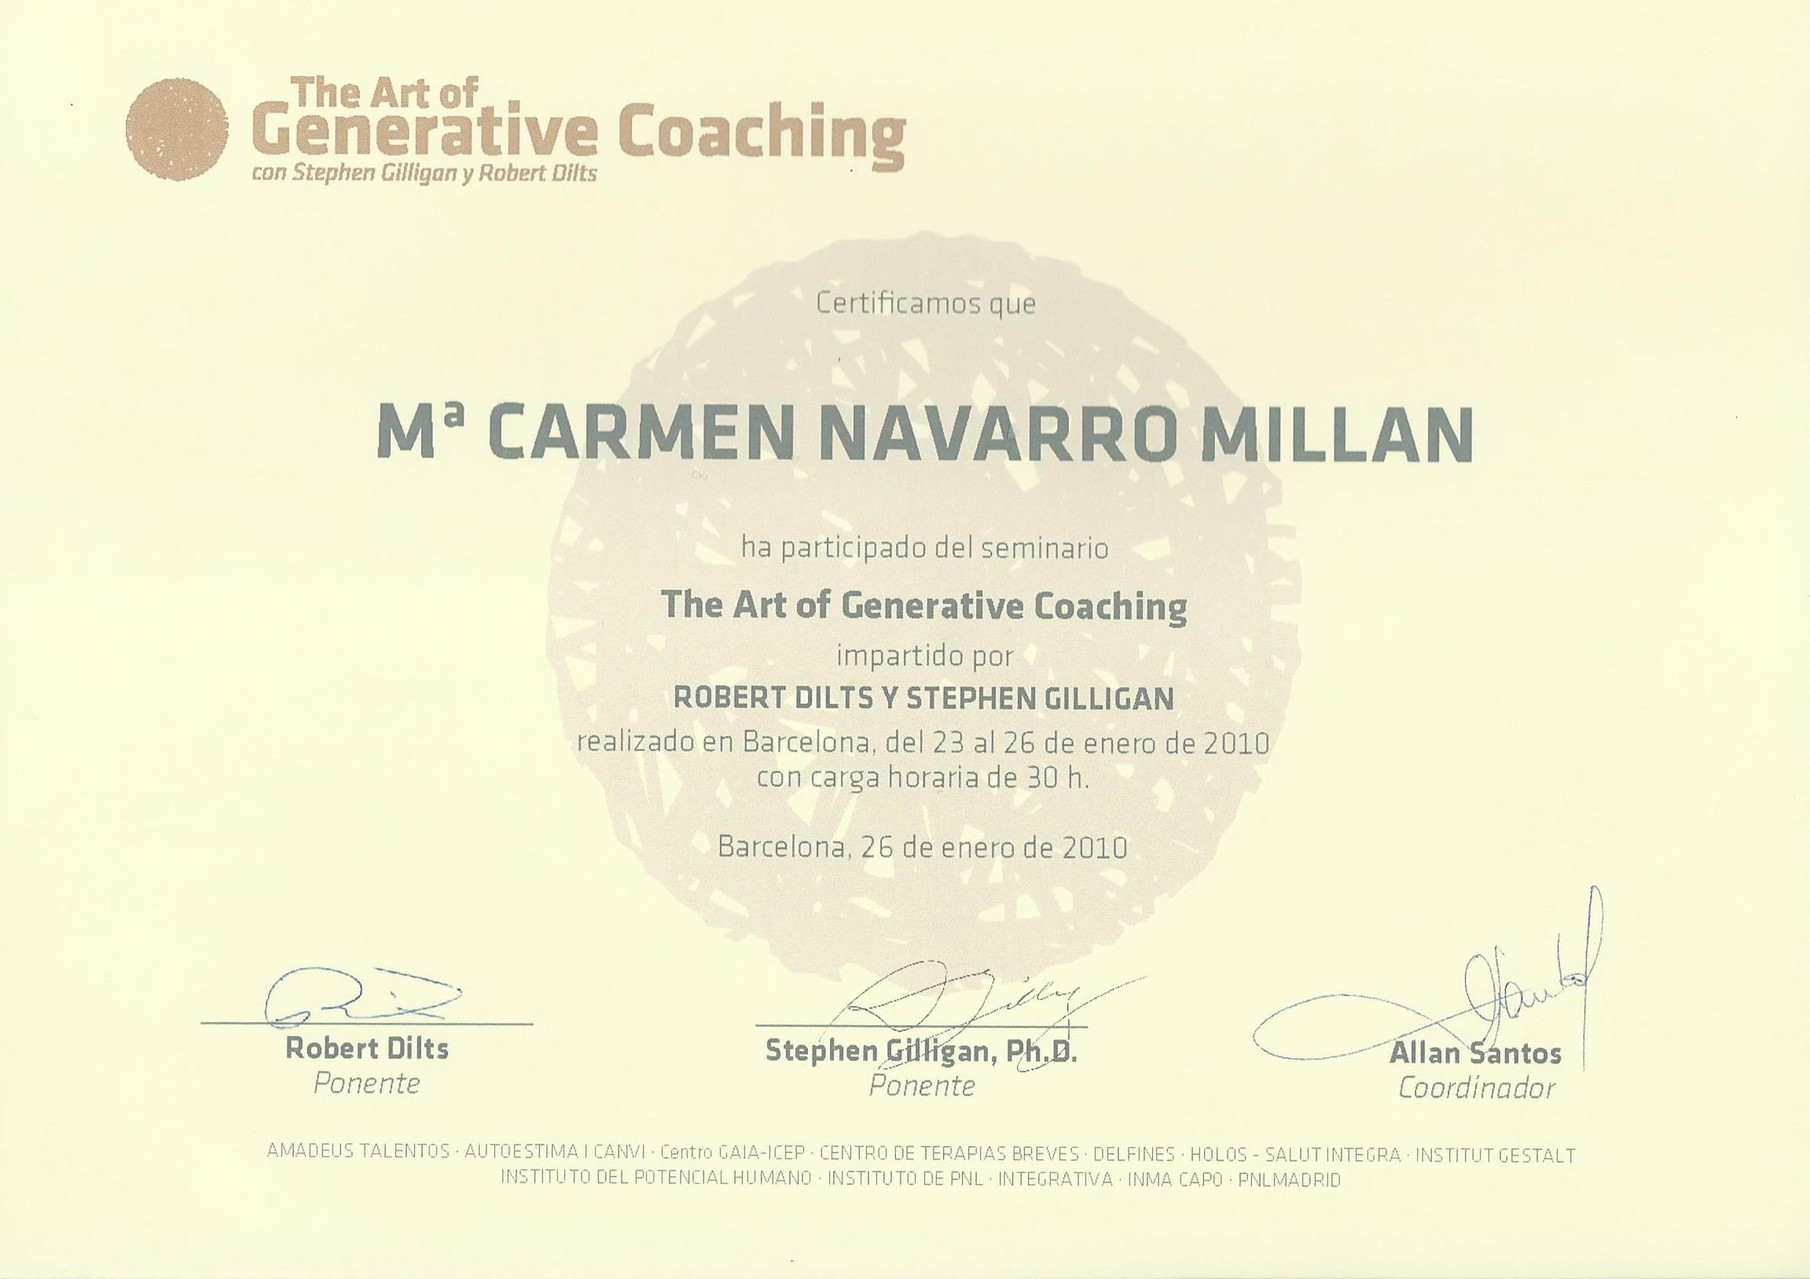 Generative coaching